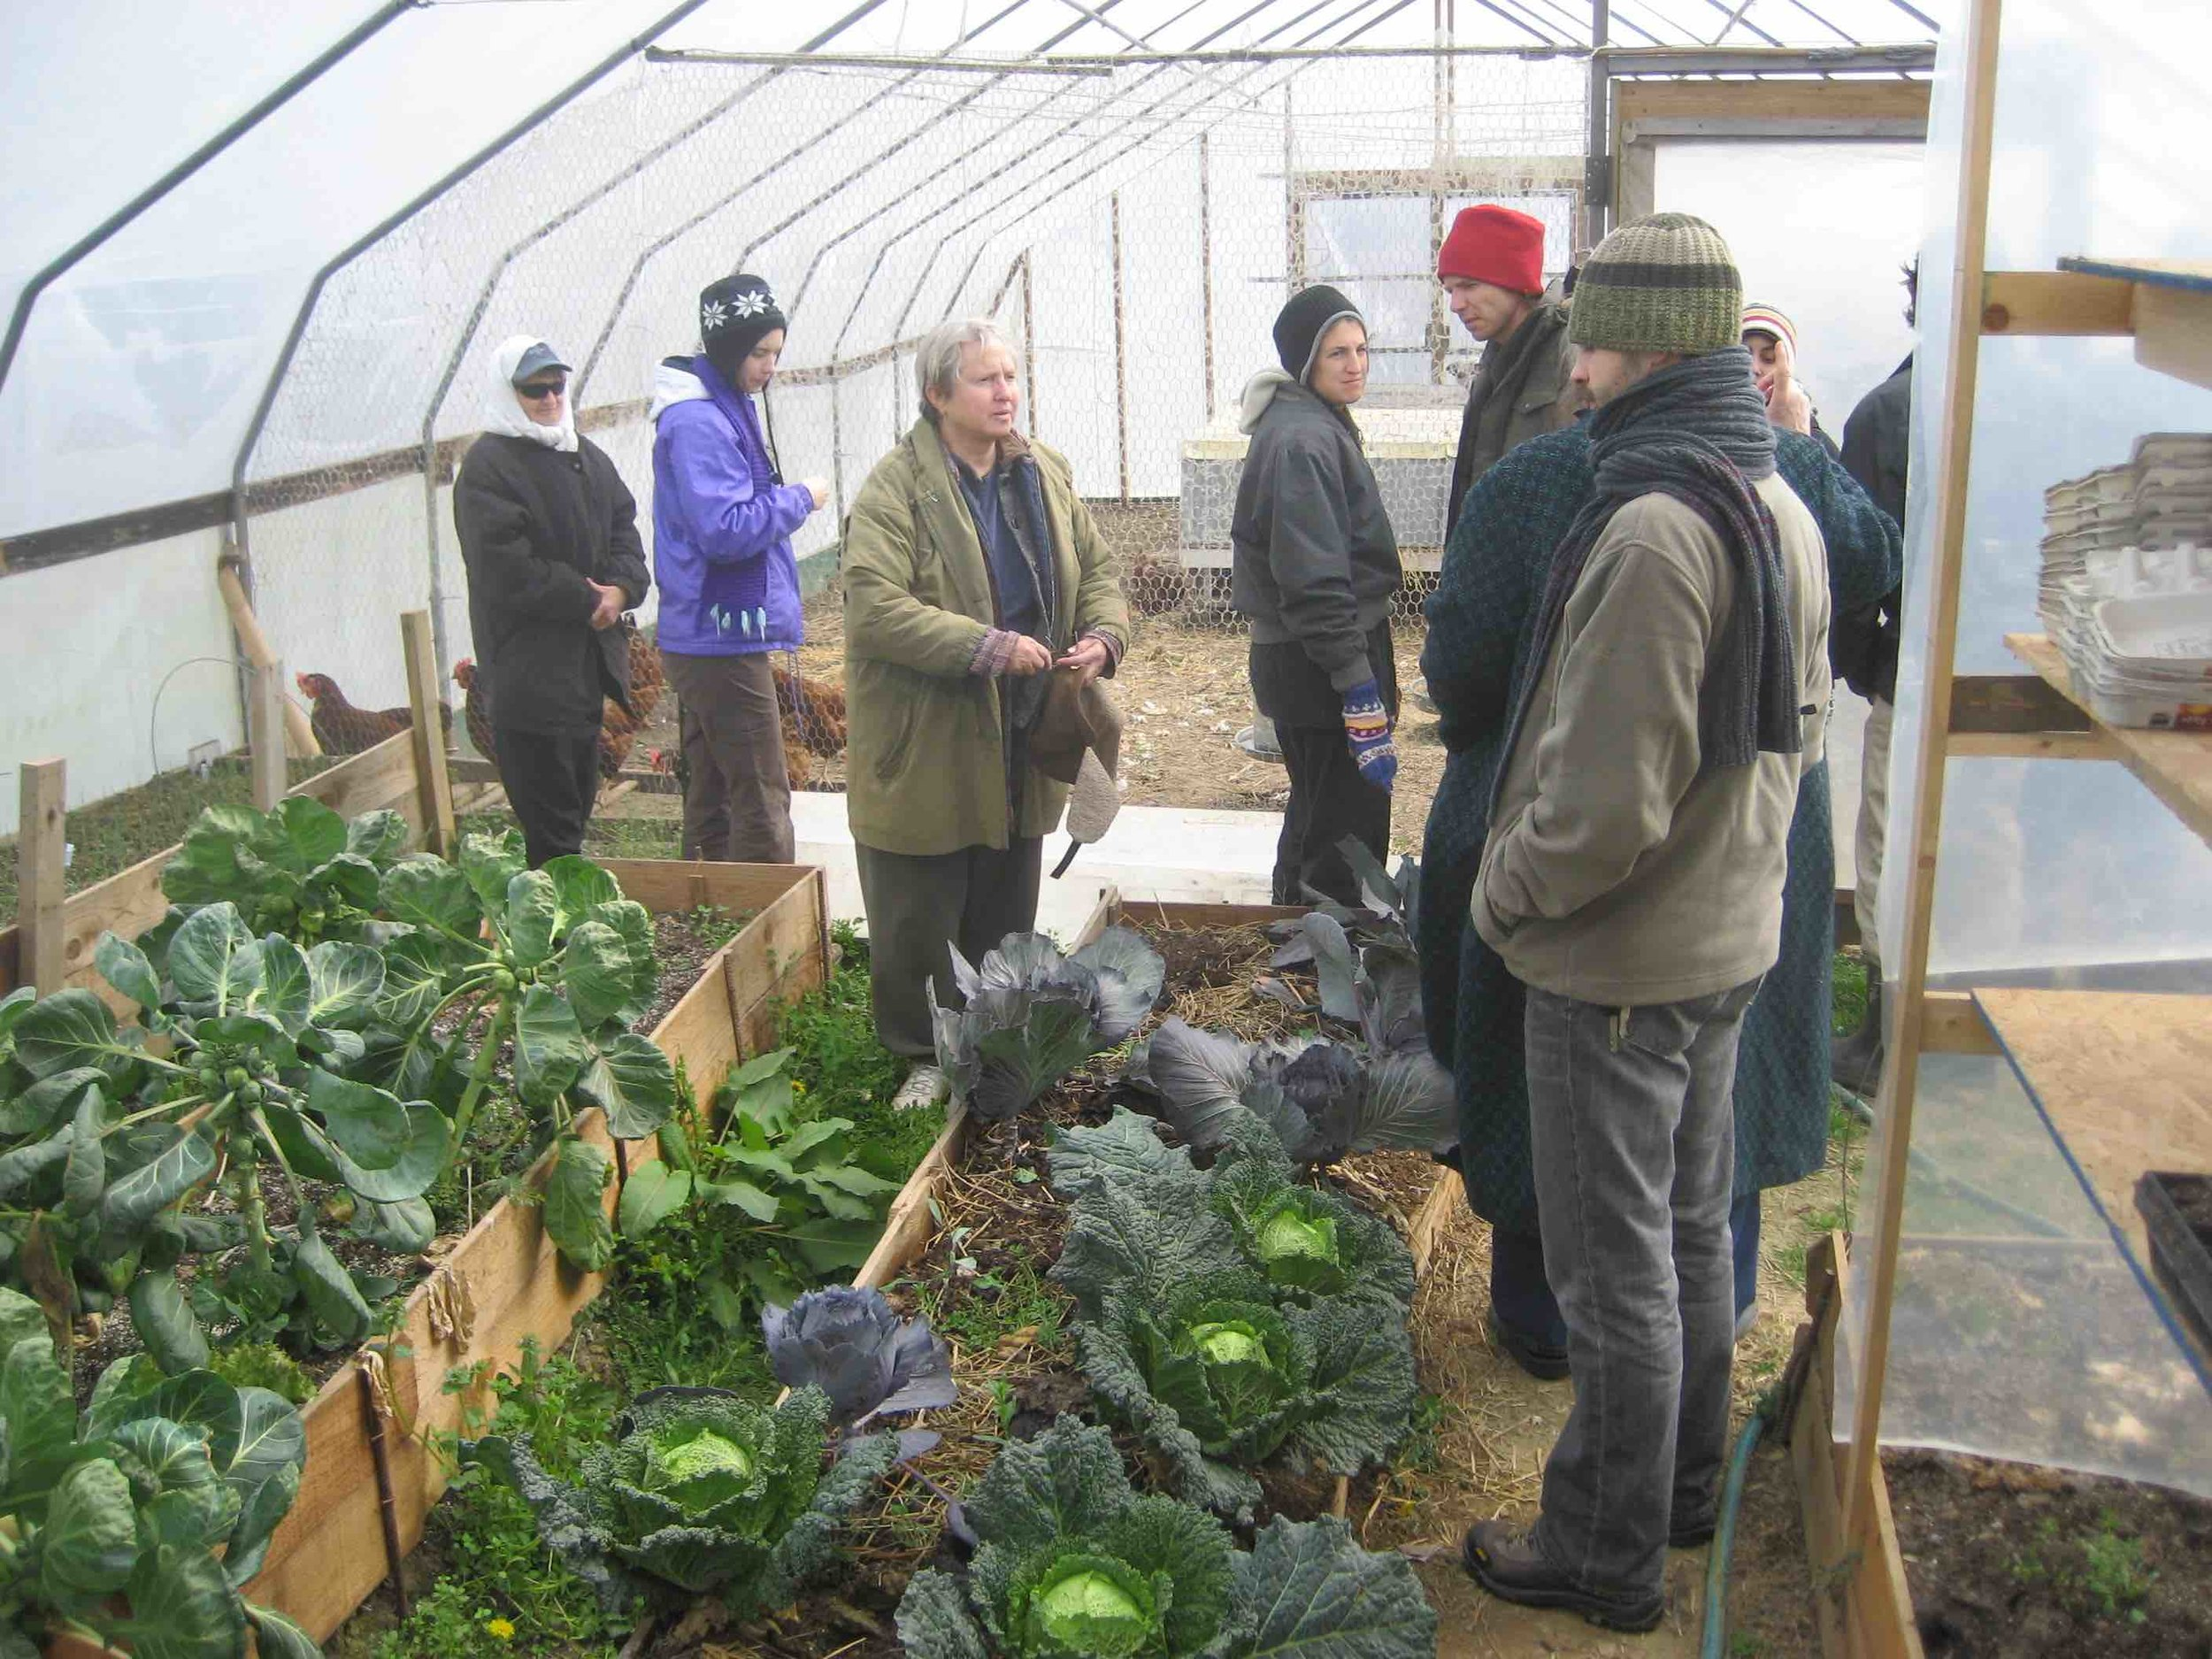 Students learning about Winter Crops at Greensleeves Farm